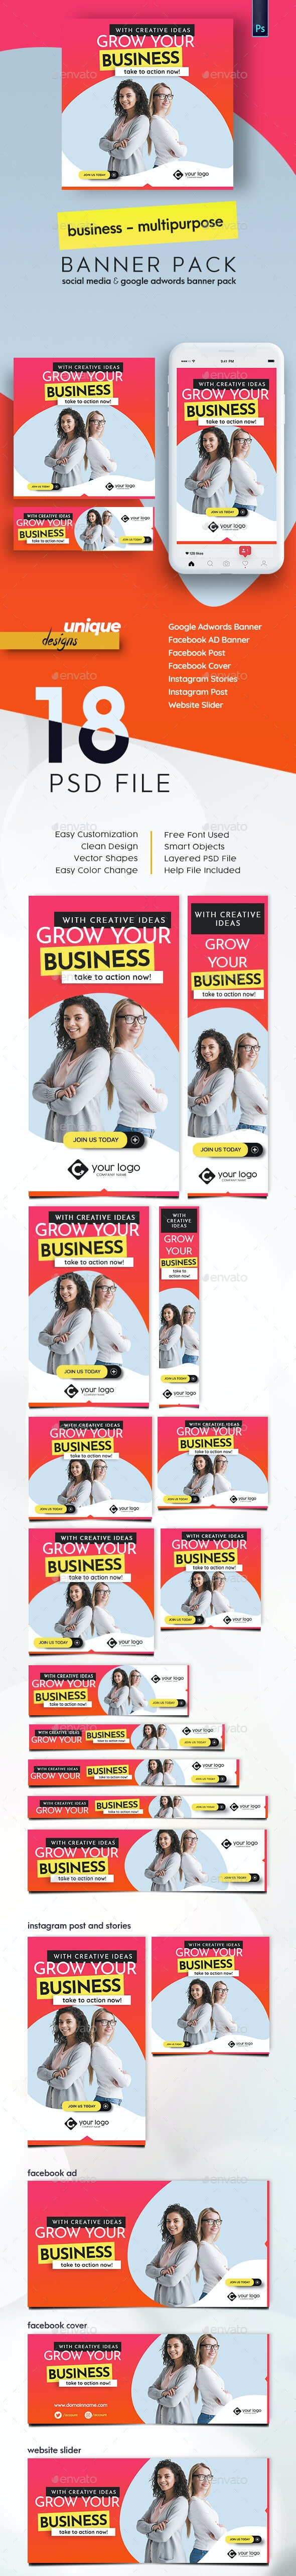 Business Banner Pack - Banners & Ads Web Elements